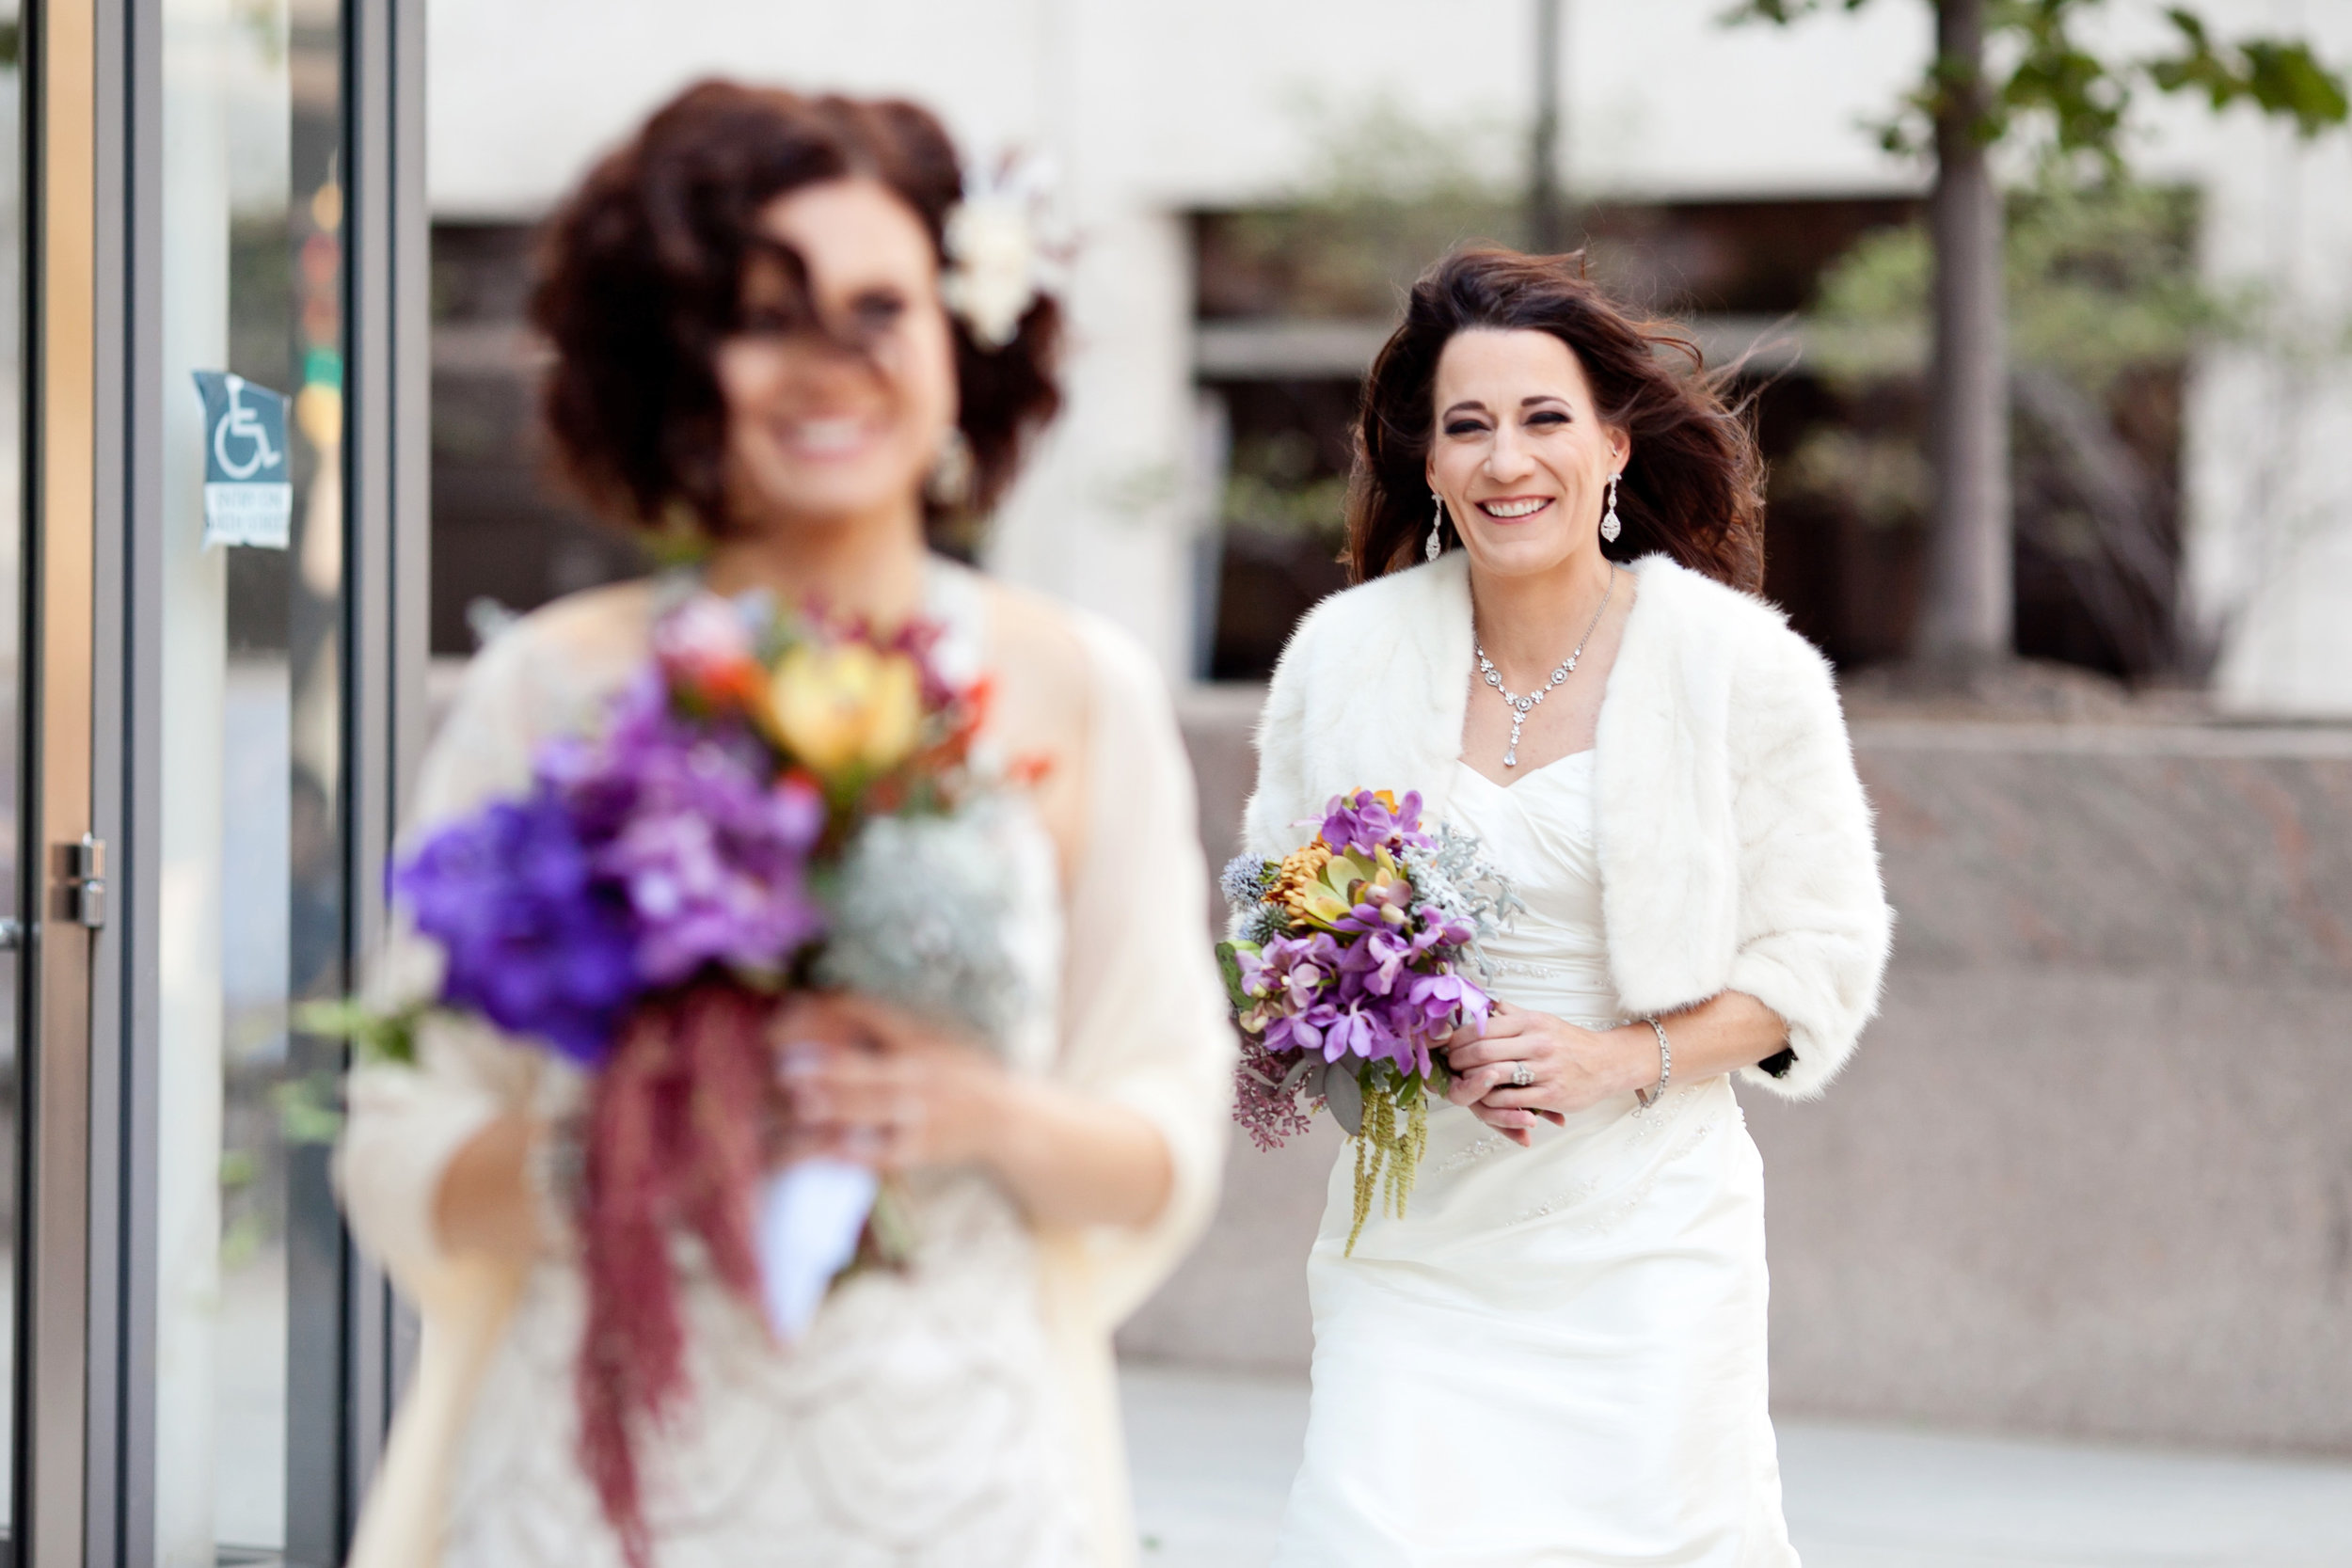 9 first look two brides two brides first look colorful bouquets both brides wear wedding dresses candid first look moment Life Design Events.jpg